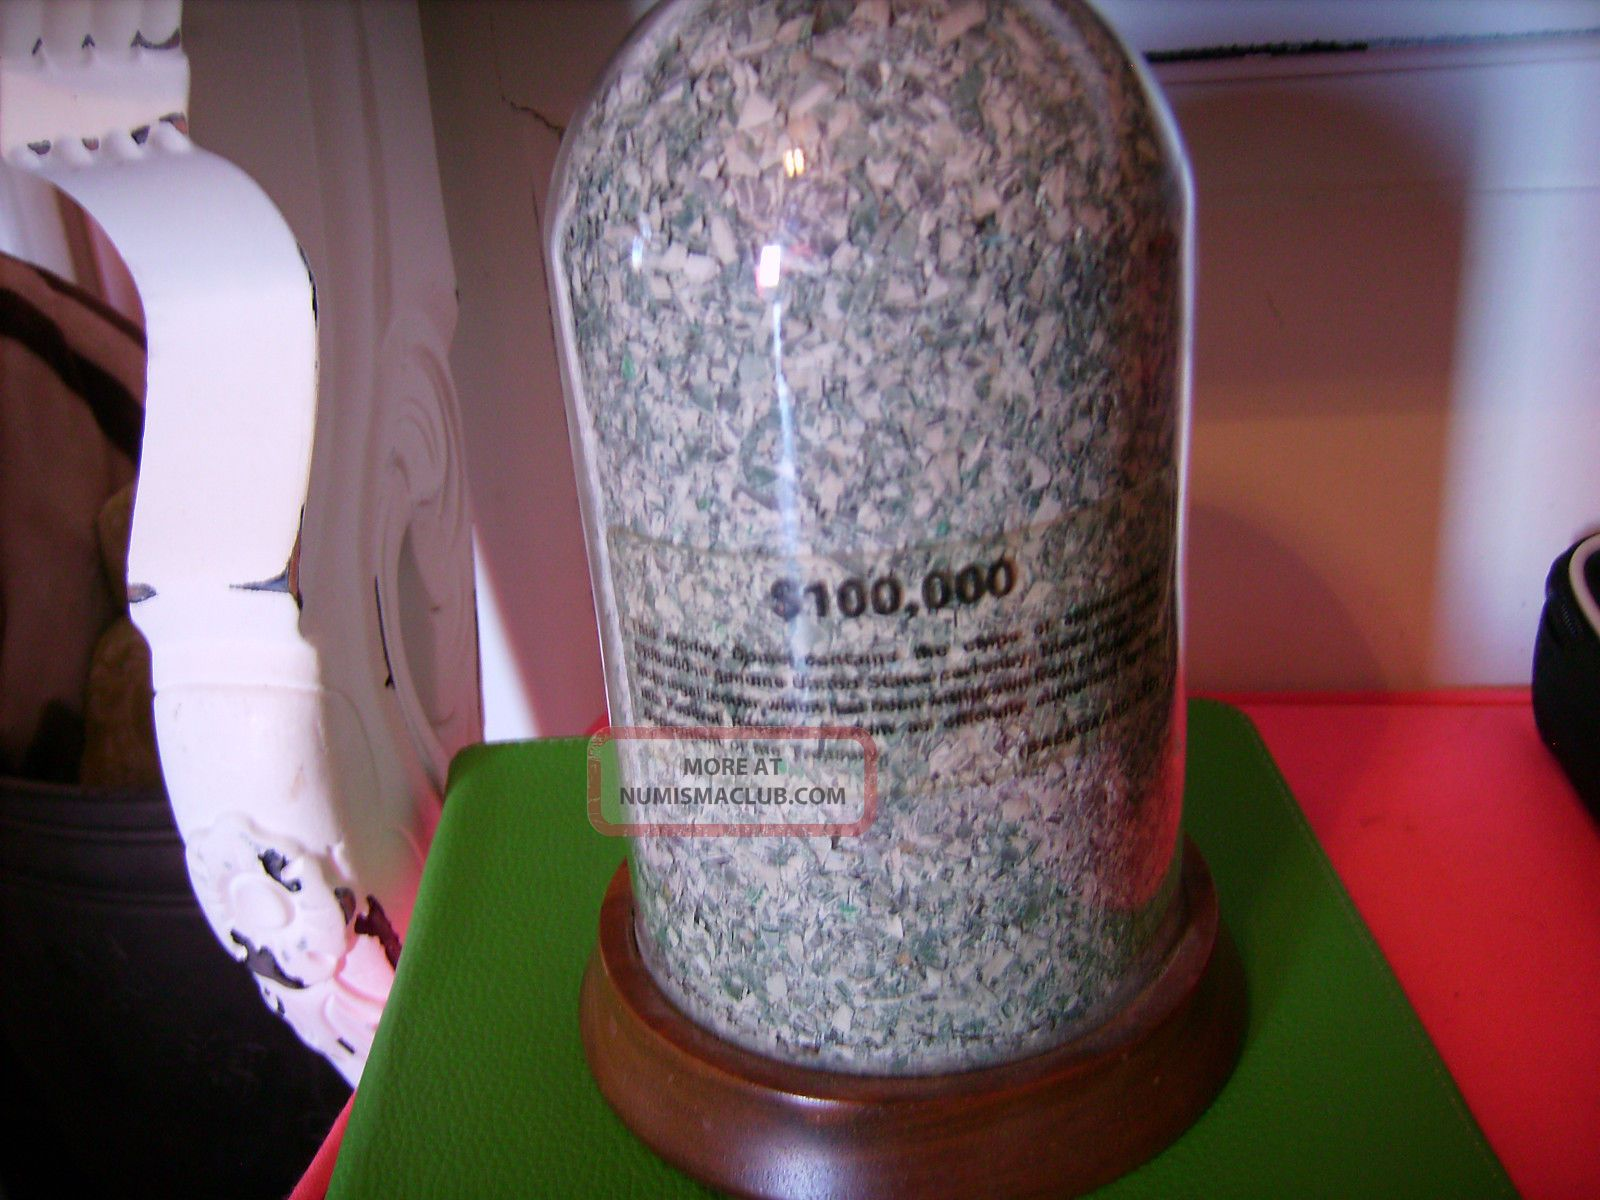 Vintage Glass Money Dome Full Of Shredded U.  S.  Currency Of $100,  000 Paper Money: US photo